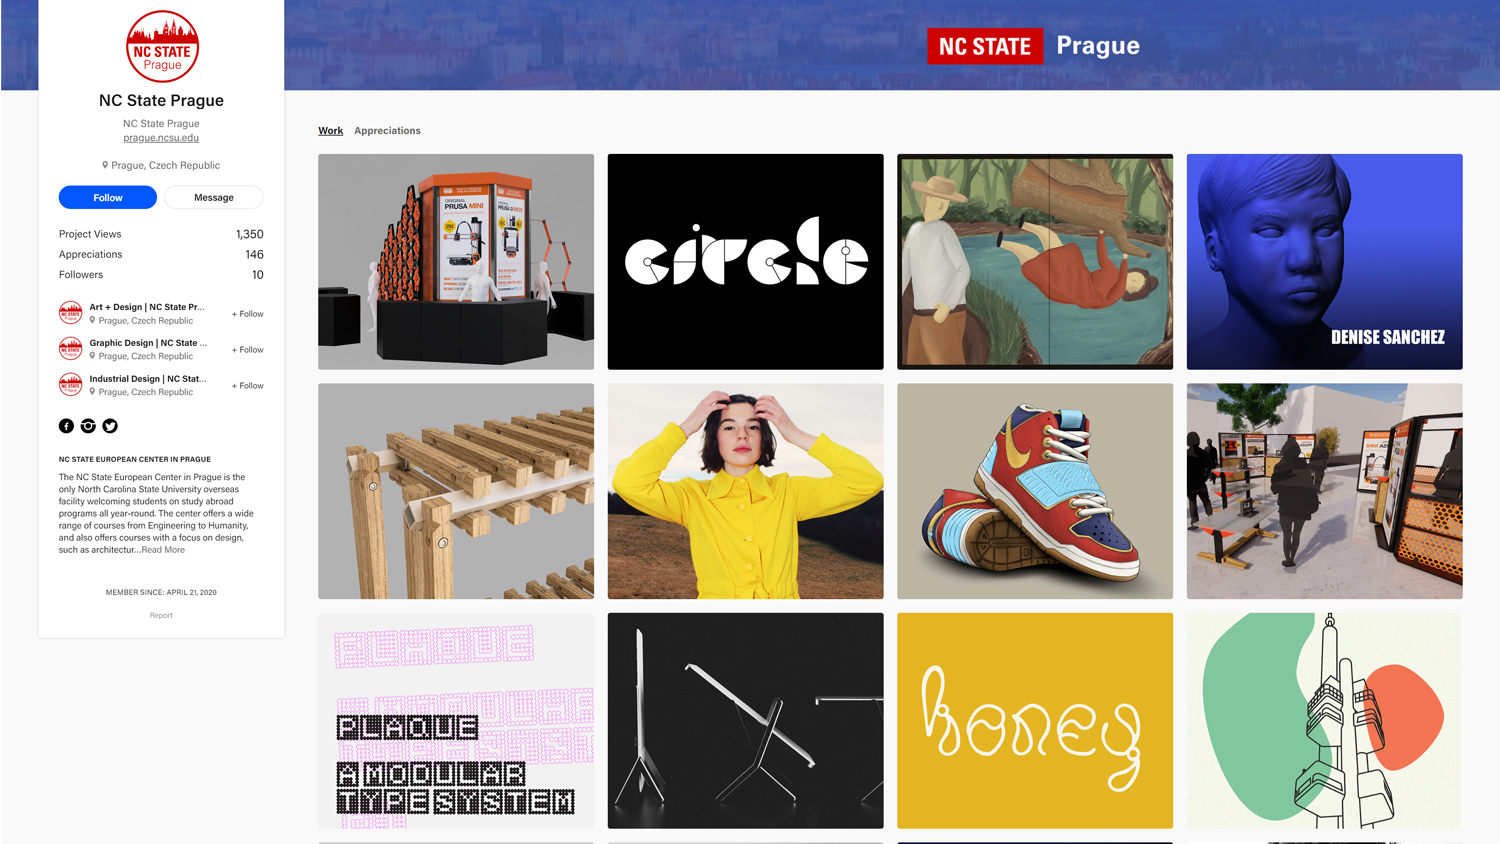 Final Design Projects from Prague on Virtual Display